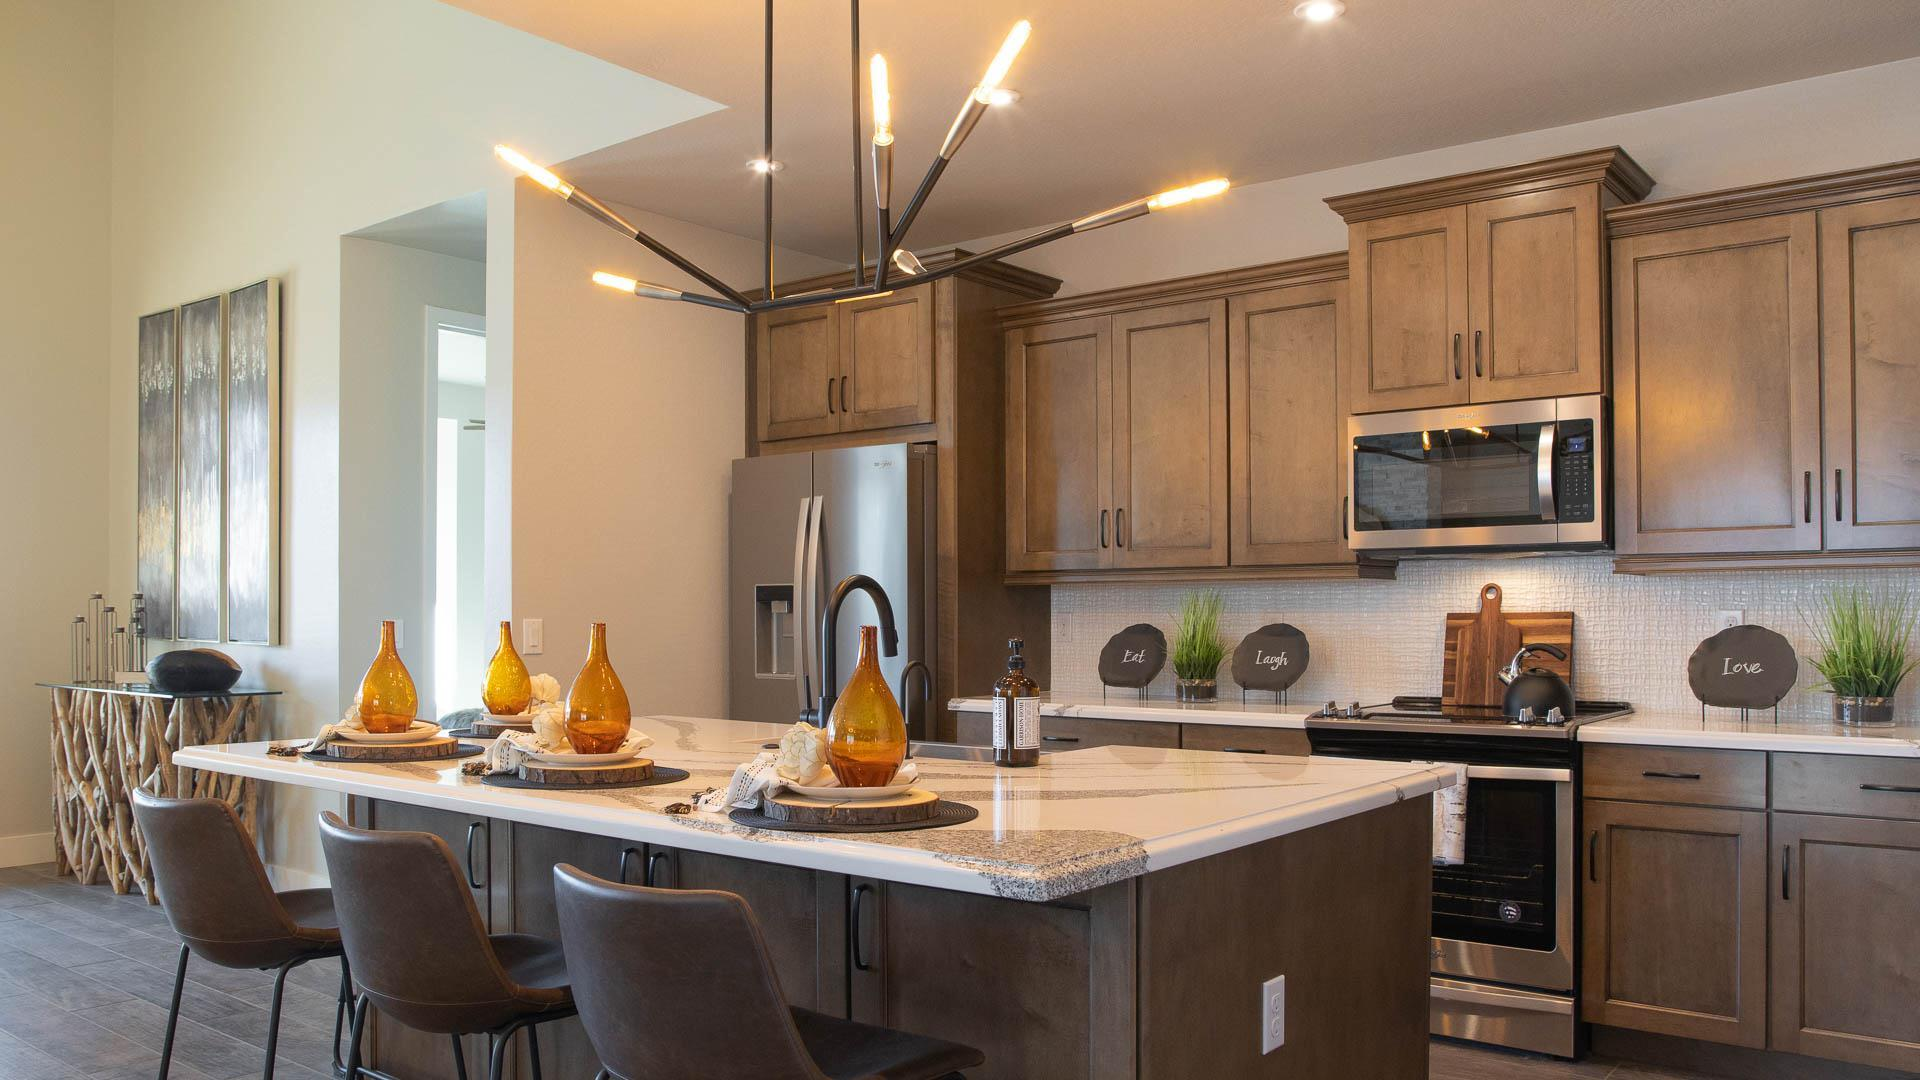 Kitchen featured in the J605 By Mandalay Homes in Prescott, AZ